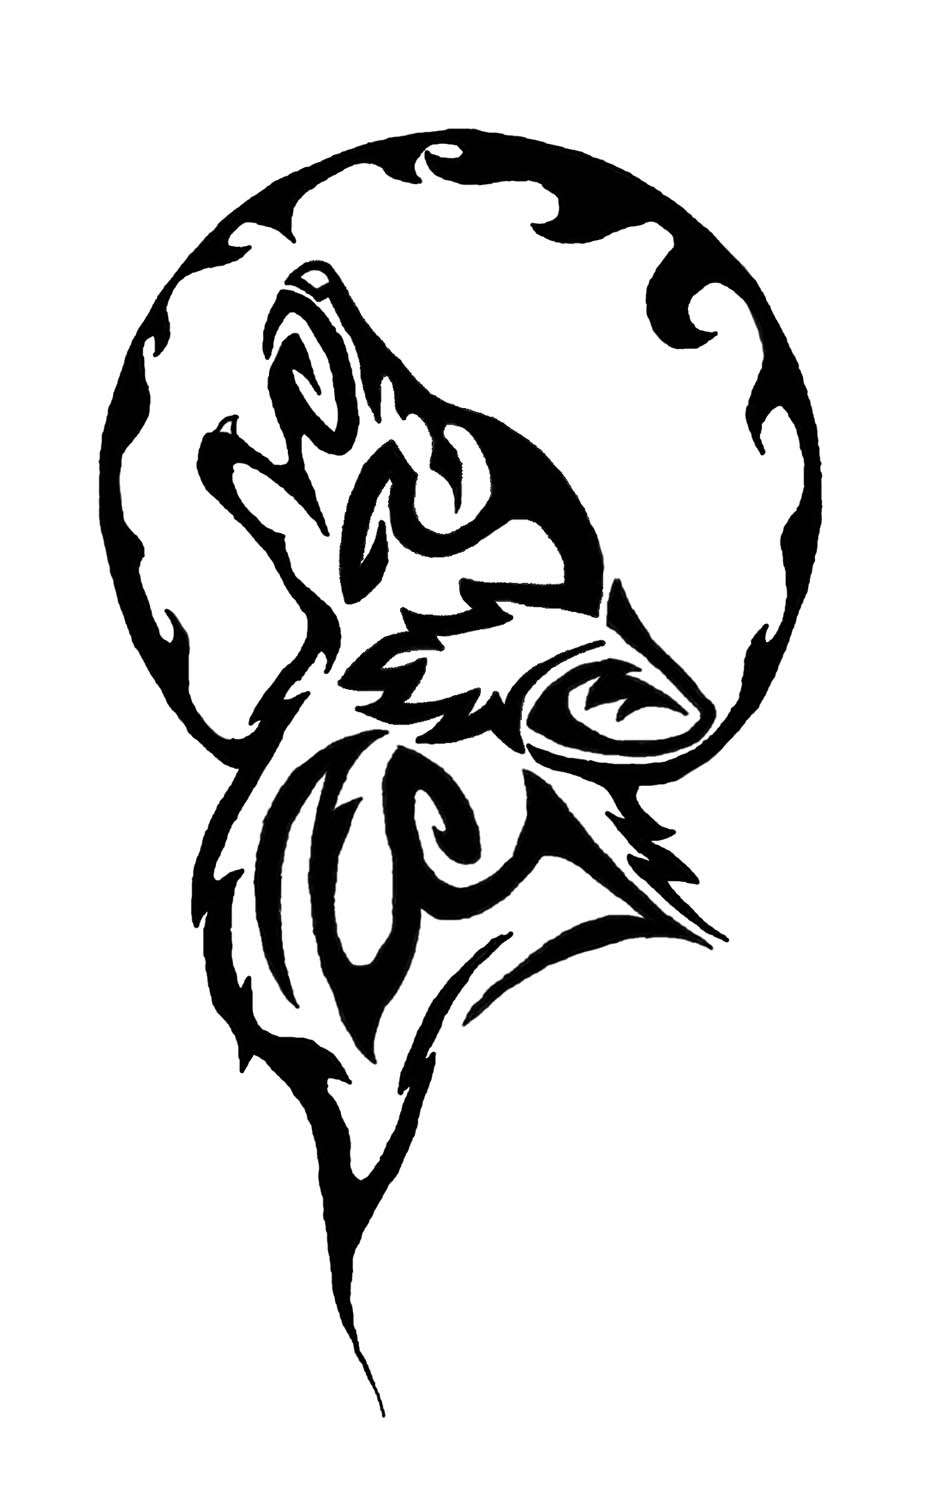 928x1500 Tribal People Tattoo Great Wolf Tattoos Variations Ideas